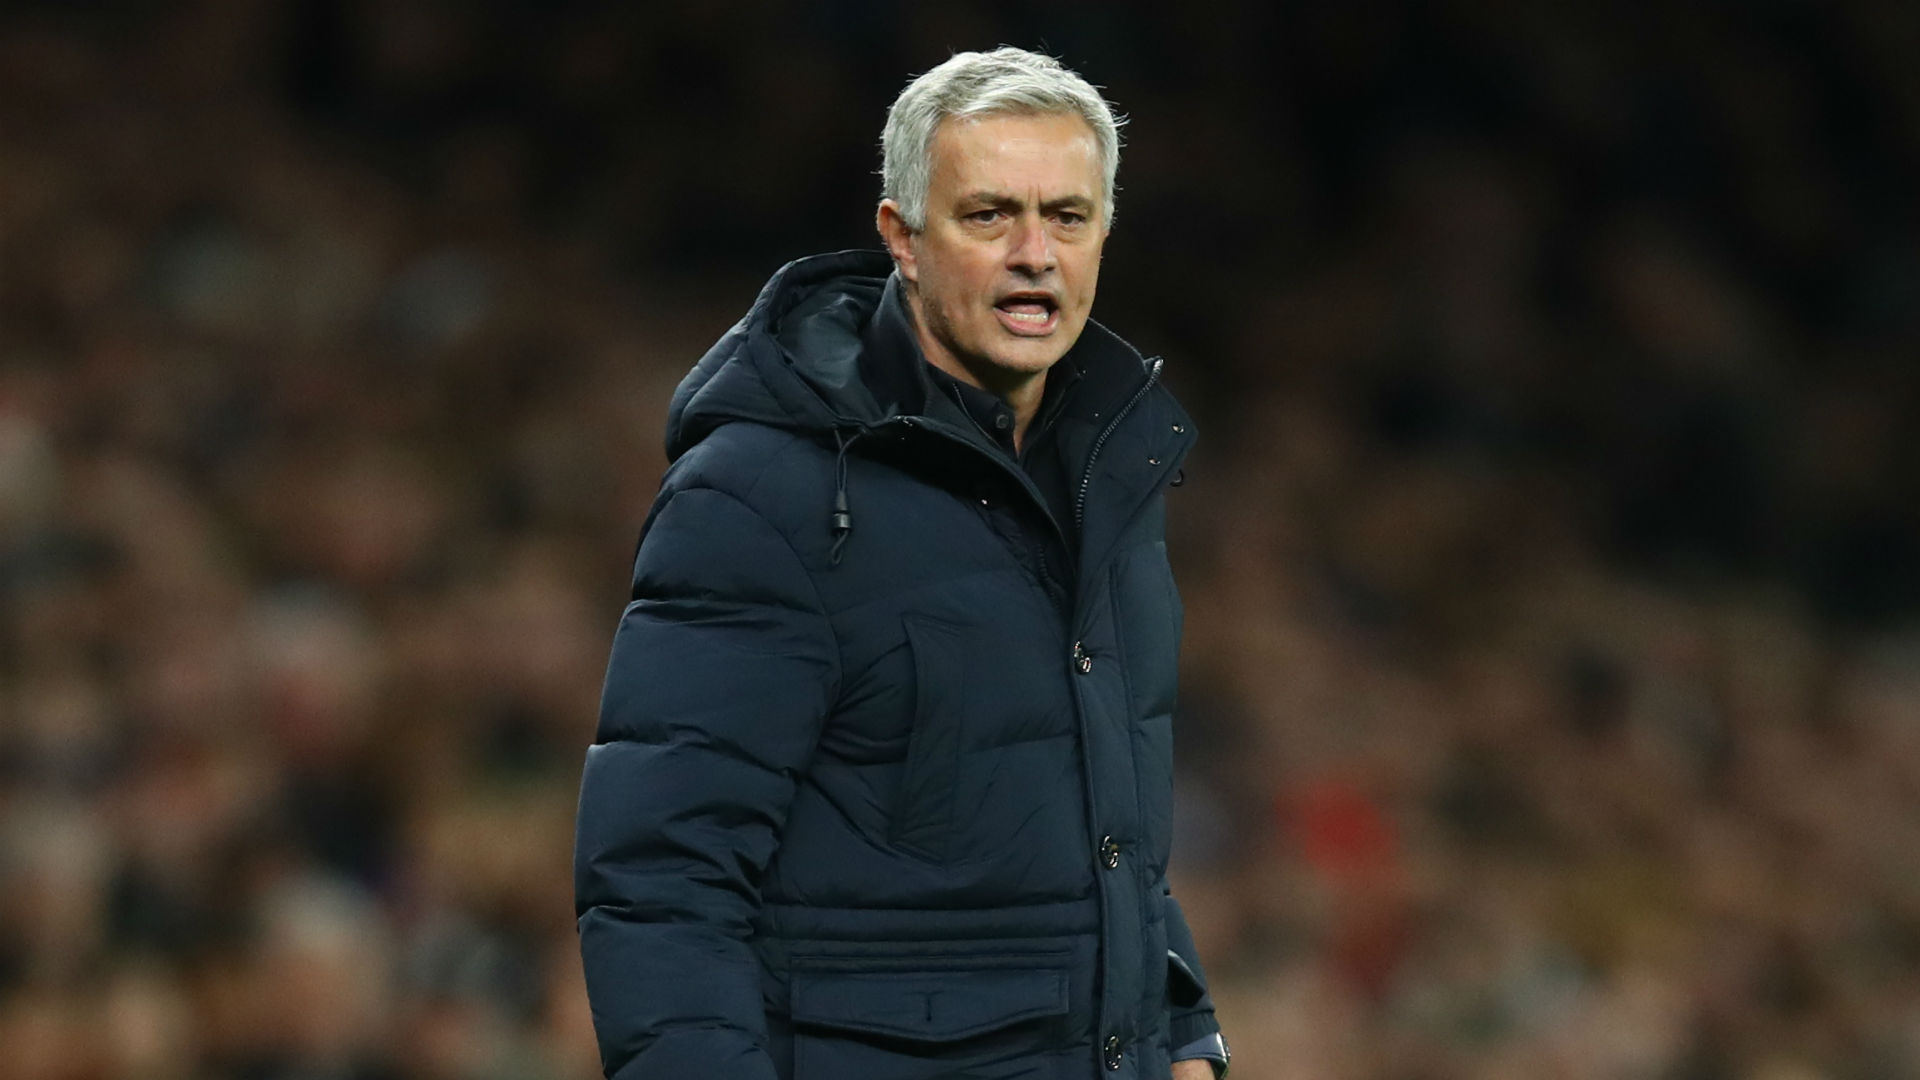 Mourinho pledges support to authorities as FA investigate Rudiger claims